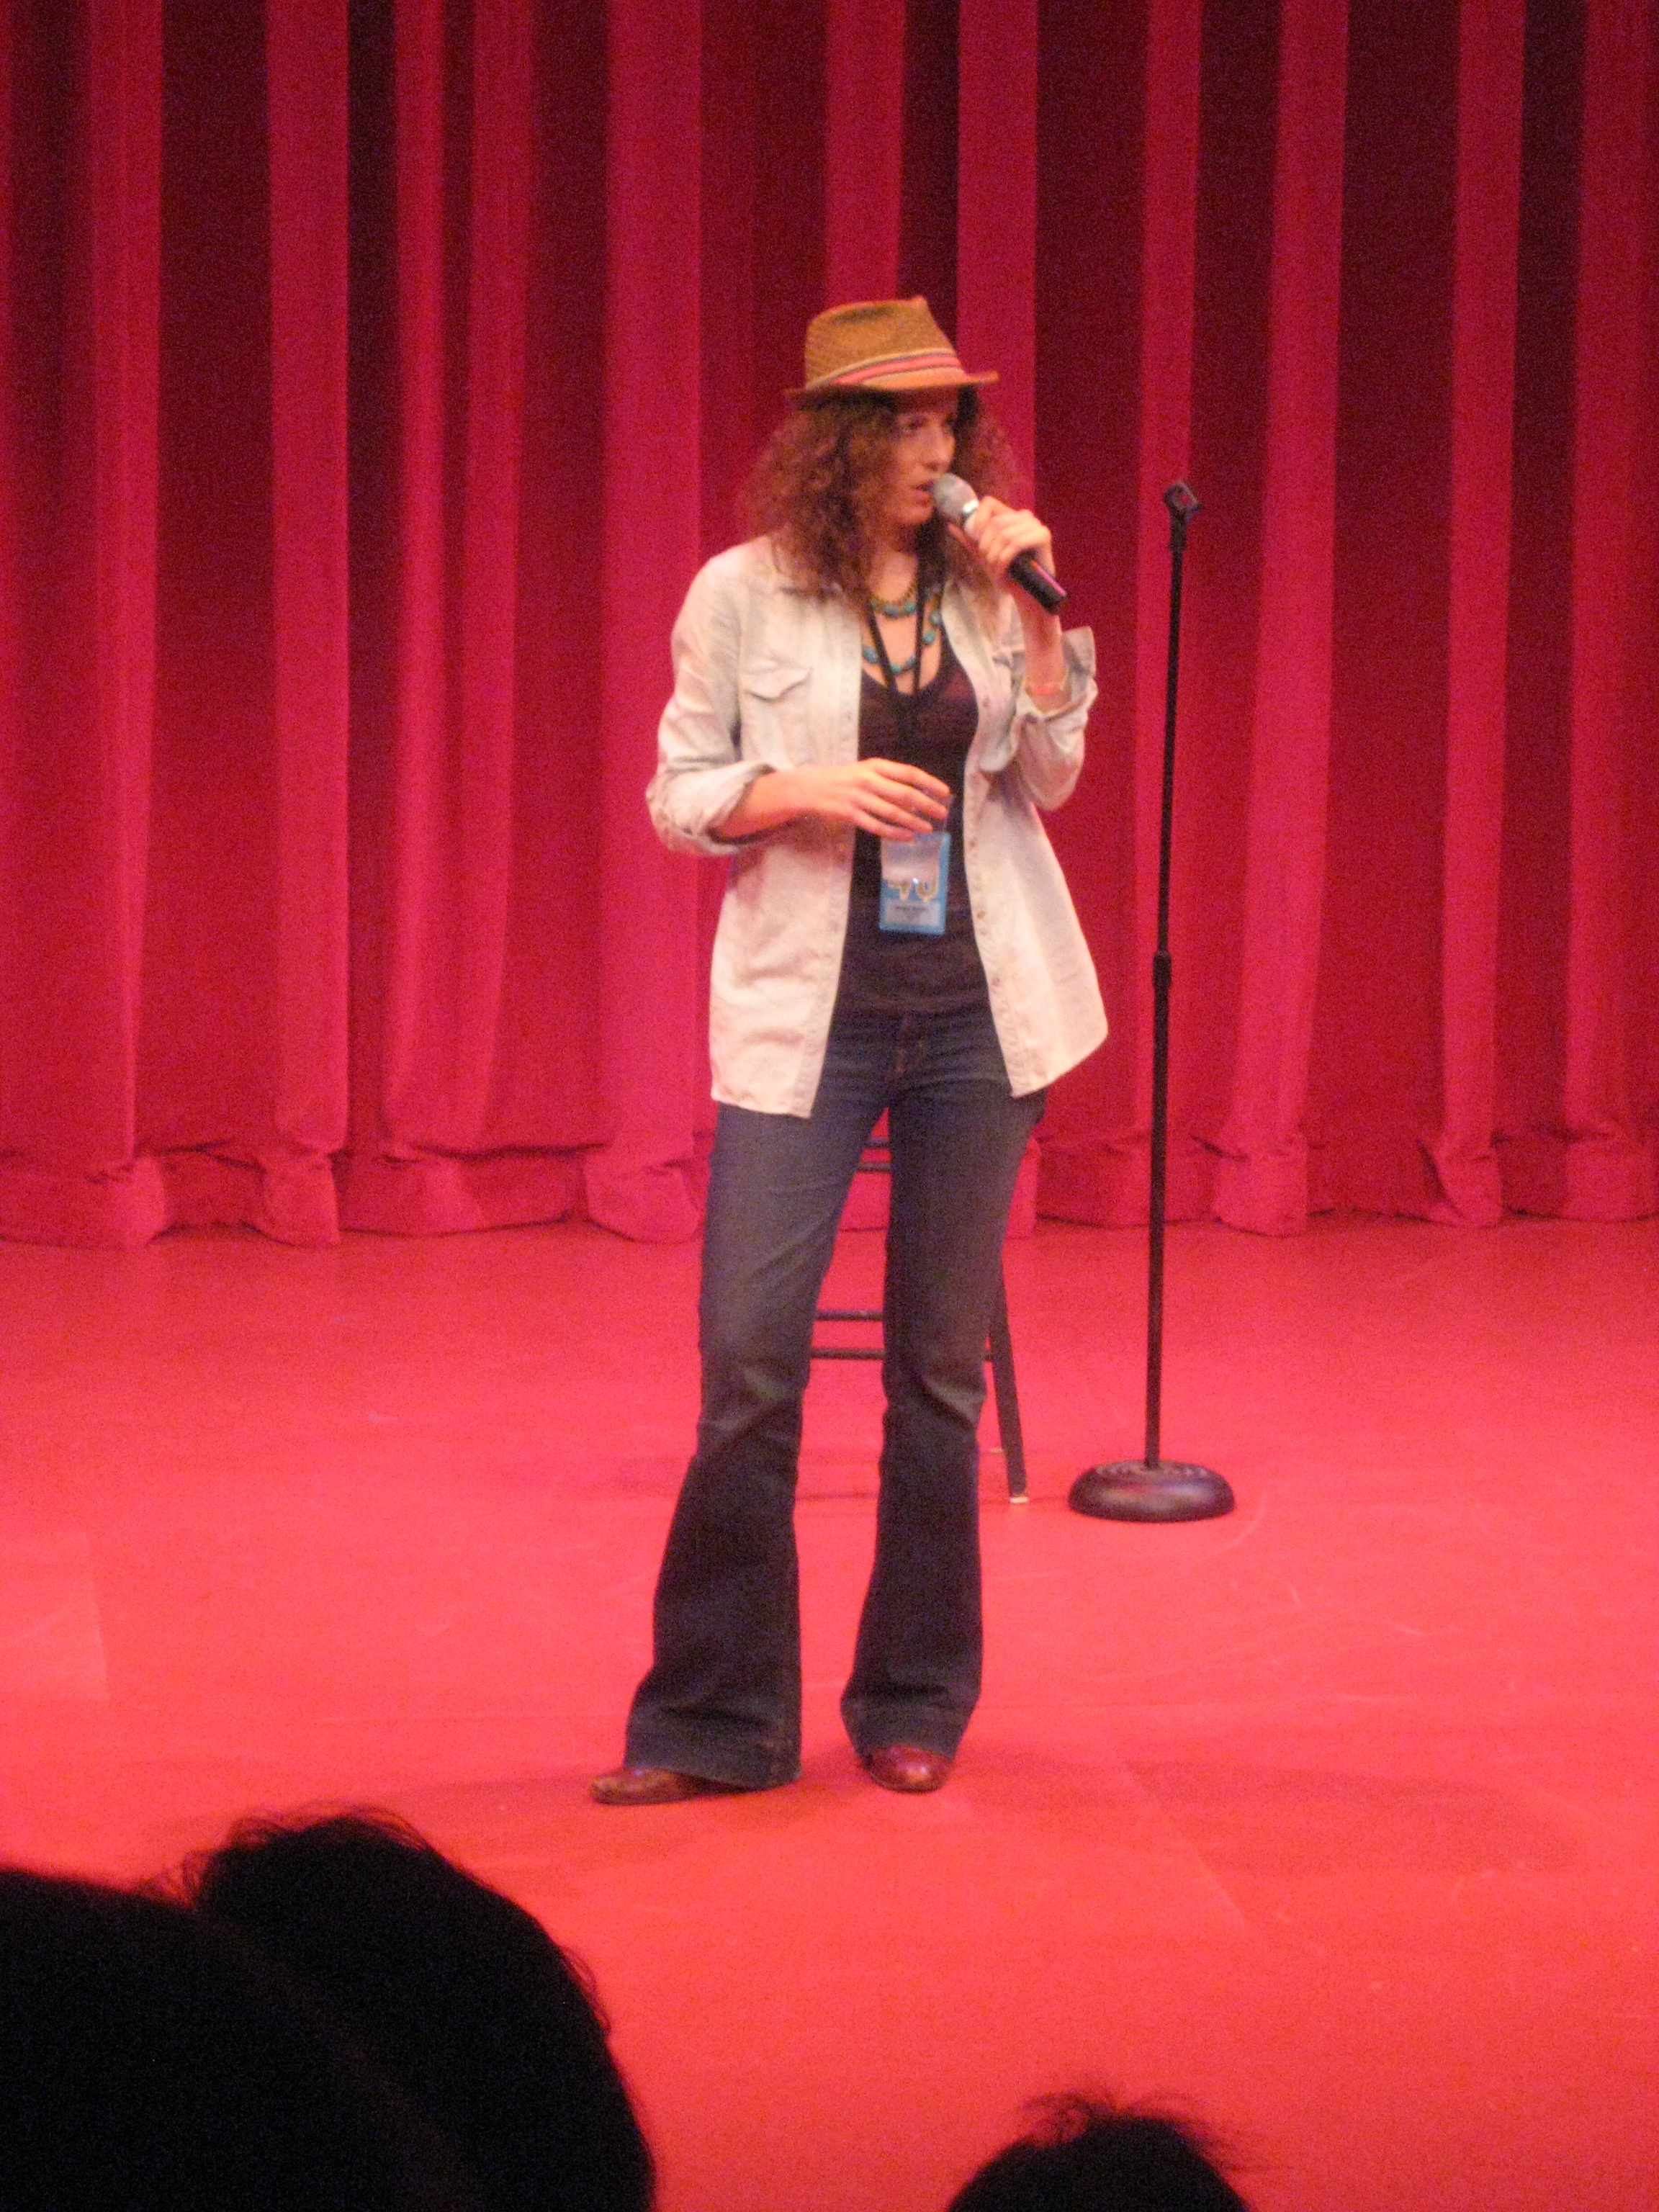 Morgan Murphy (comedian) Morgan Murphy (comedian) new images